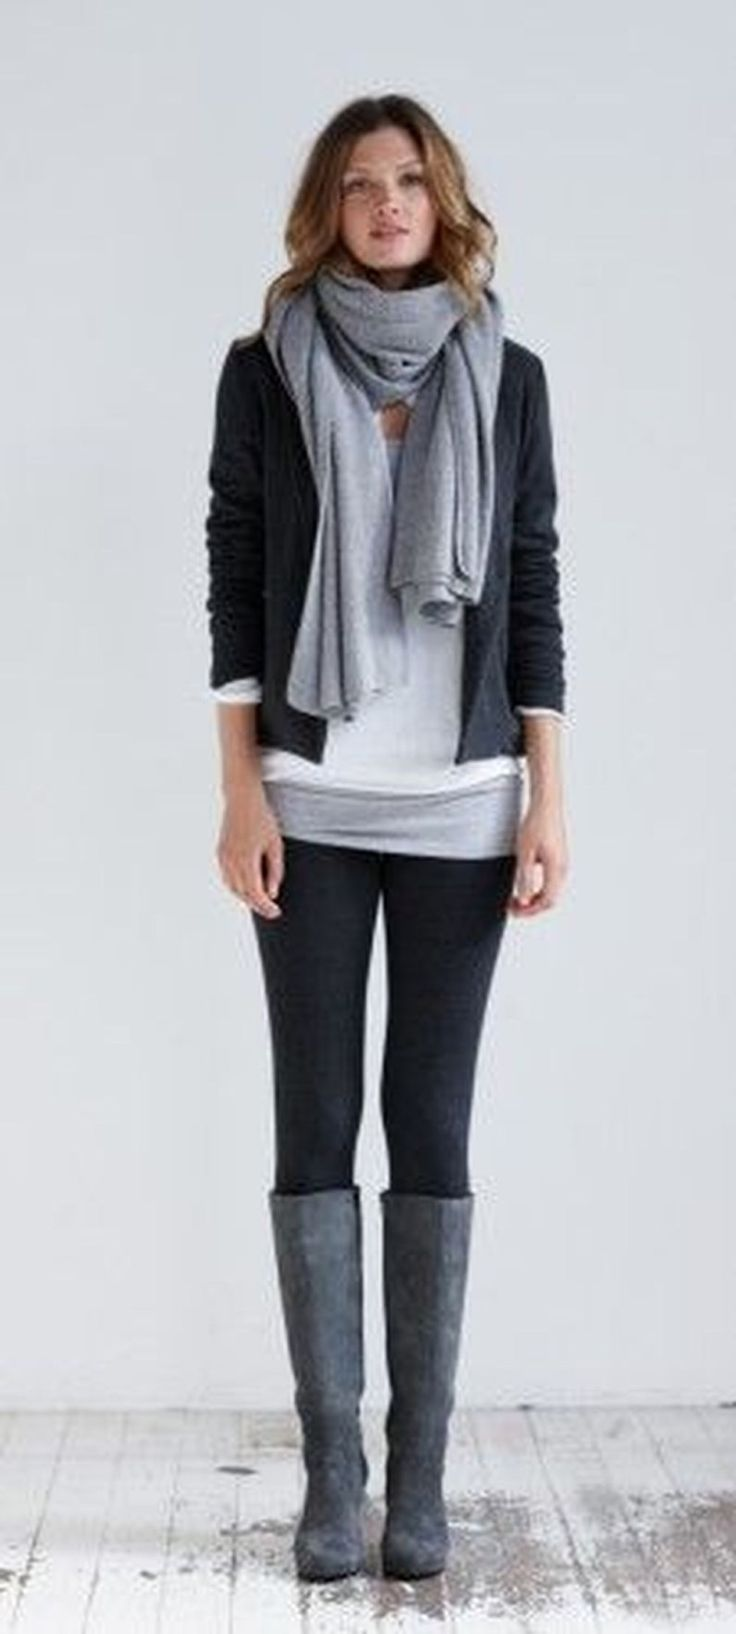 Comfy and casual winter outfit with leggings: https://www.brightlifego.com/style/length.html?cat=16 #compression #leggings